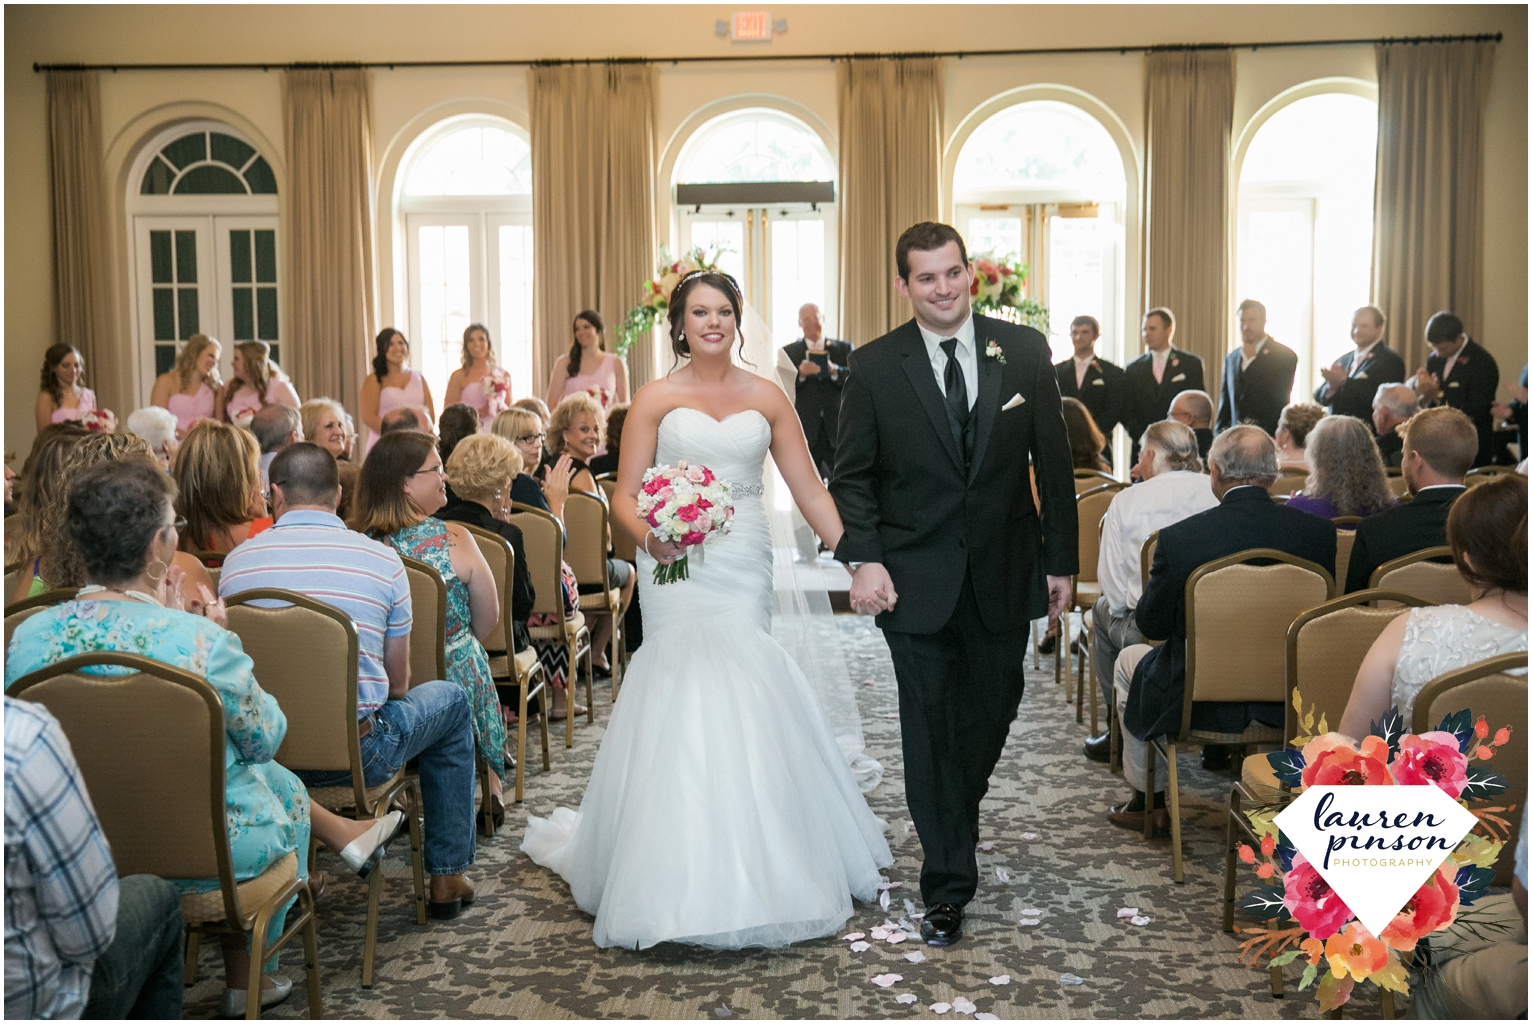 wichita-falls-wedding-photographer-kemp-center-at-the-forum-photography-two-clever-chicks_1055.jpg